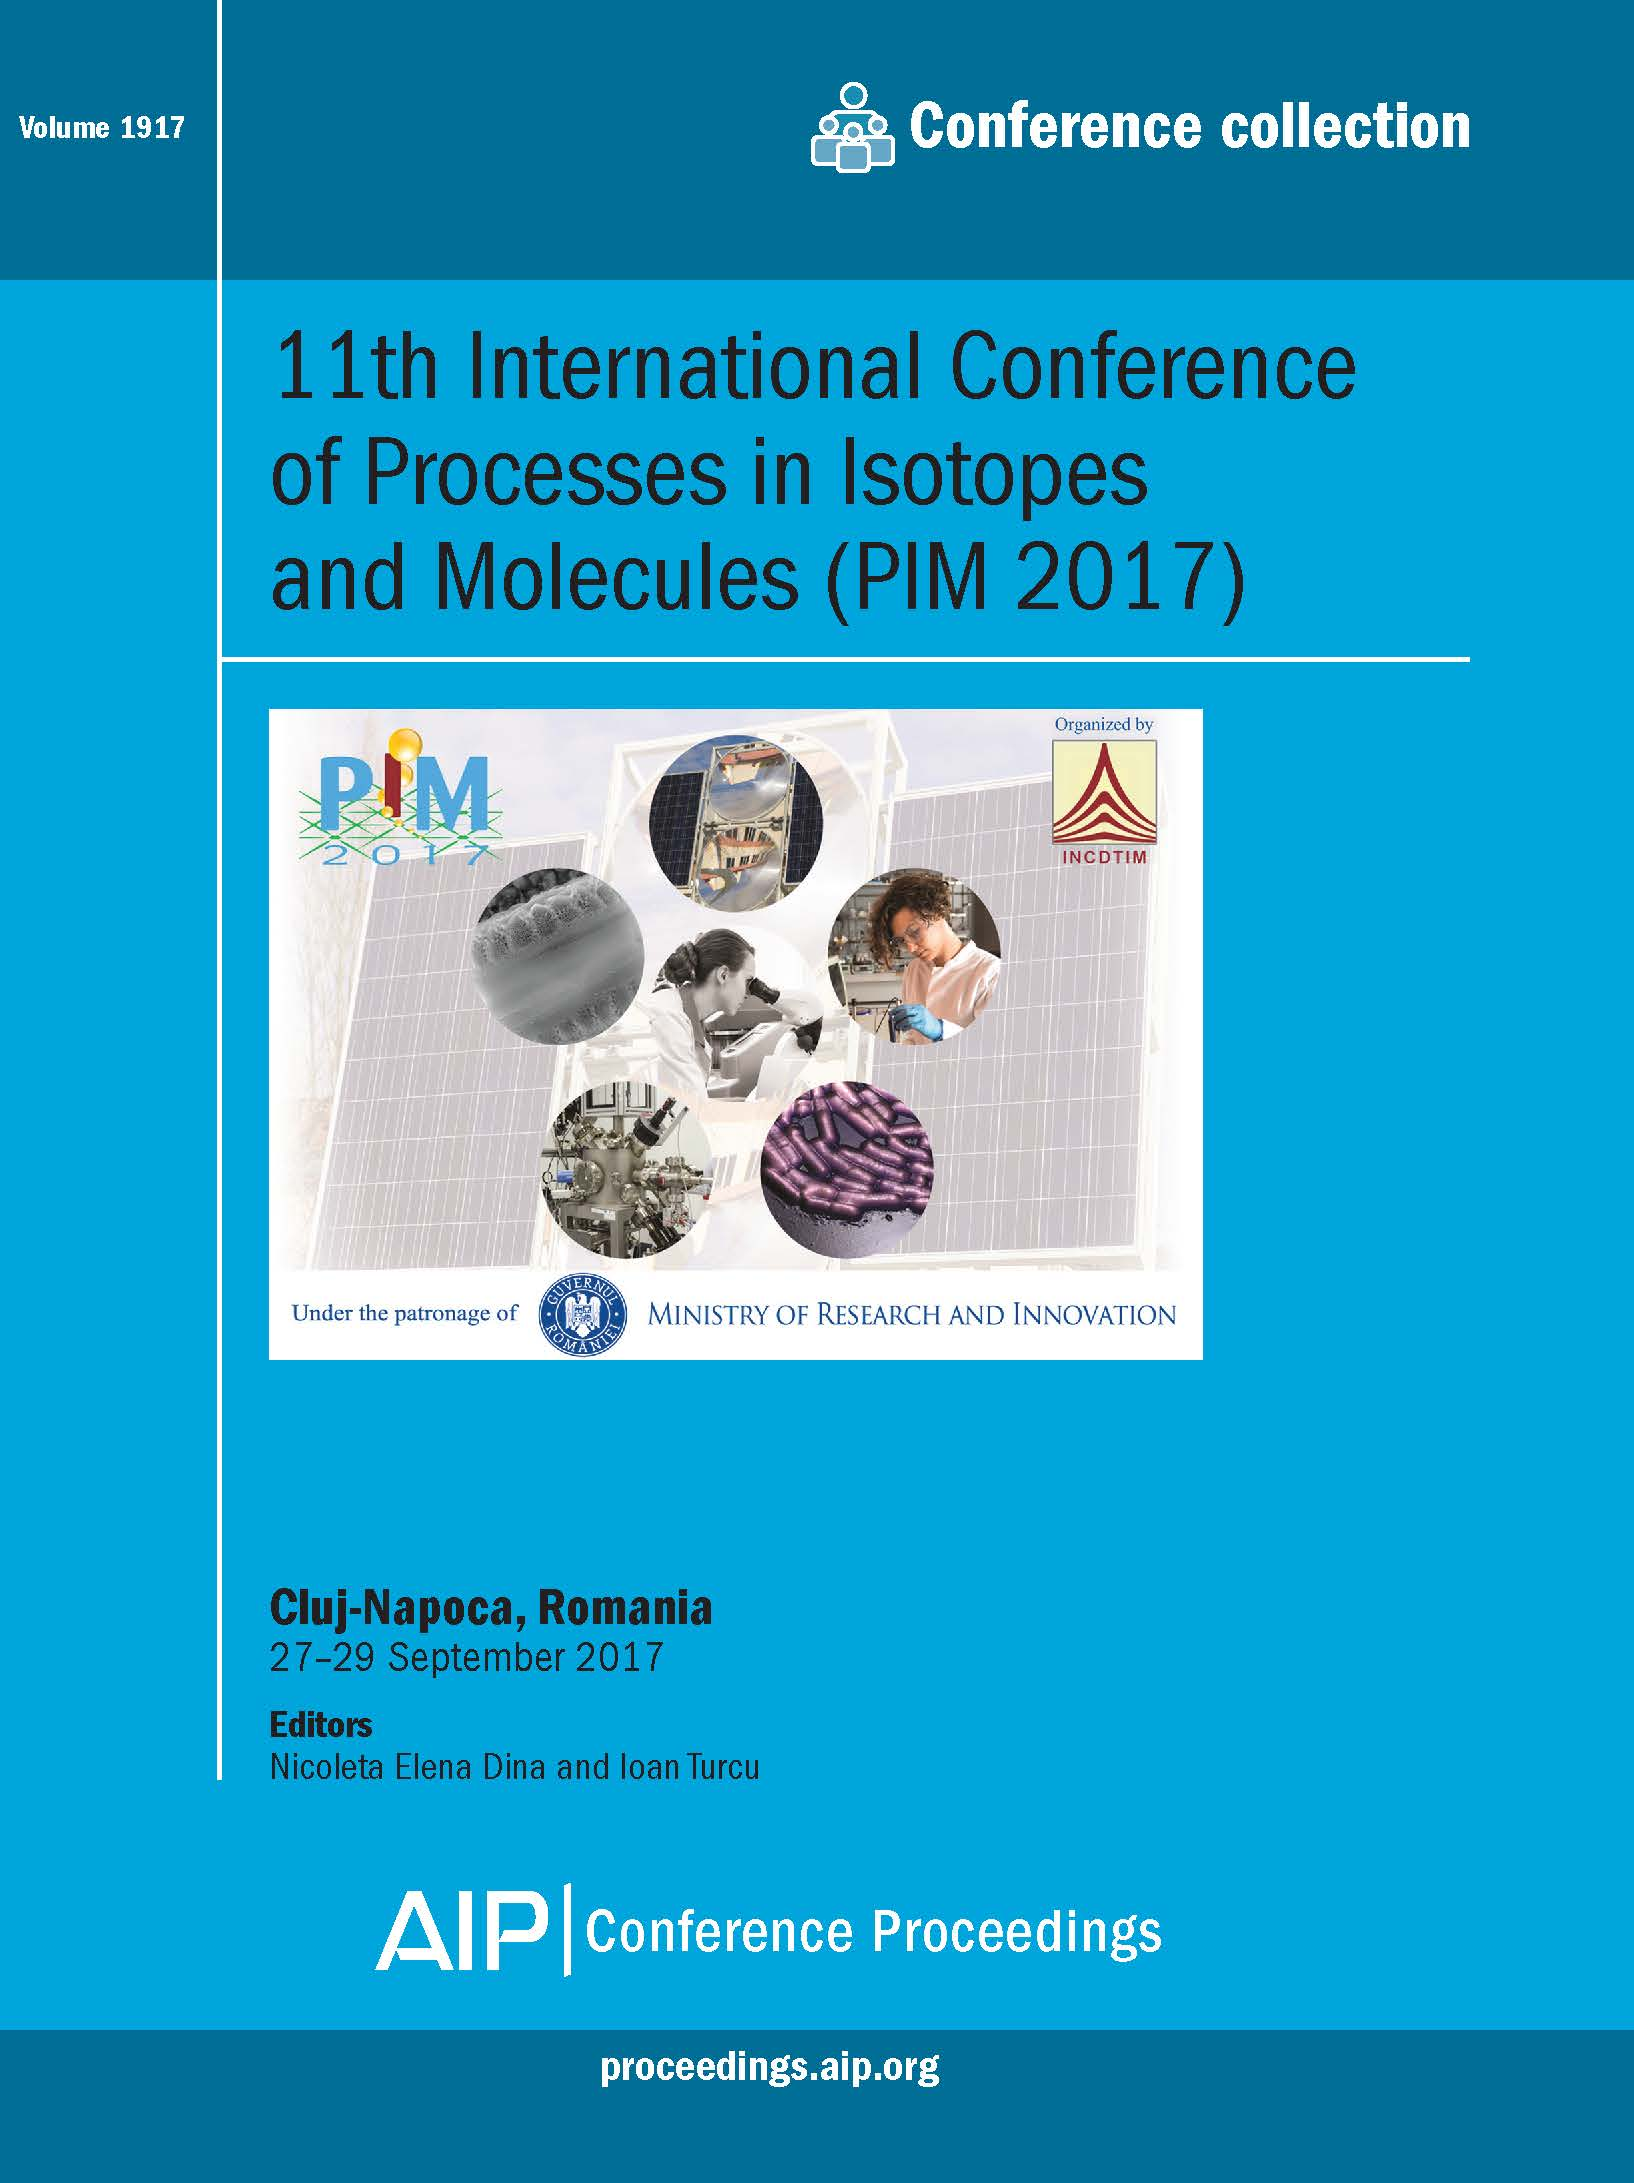 Volume 1917: 11th International Conference on Processes in Isotopes